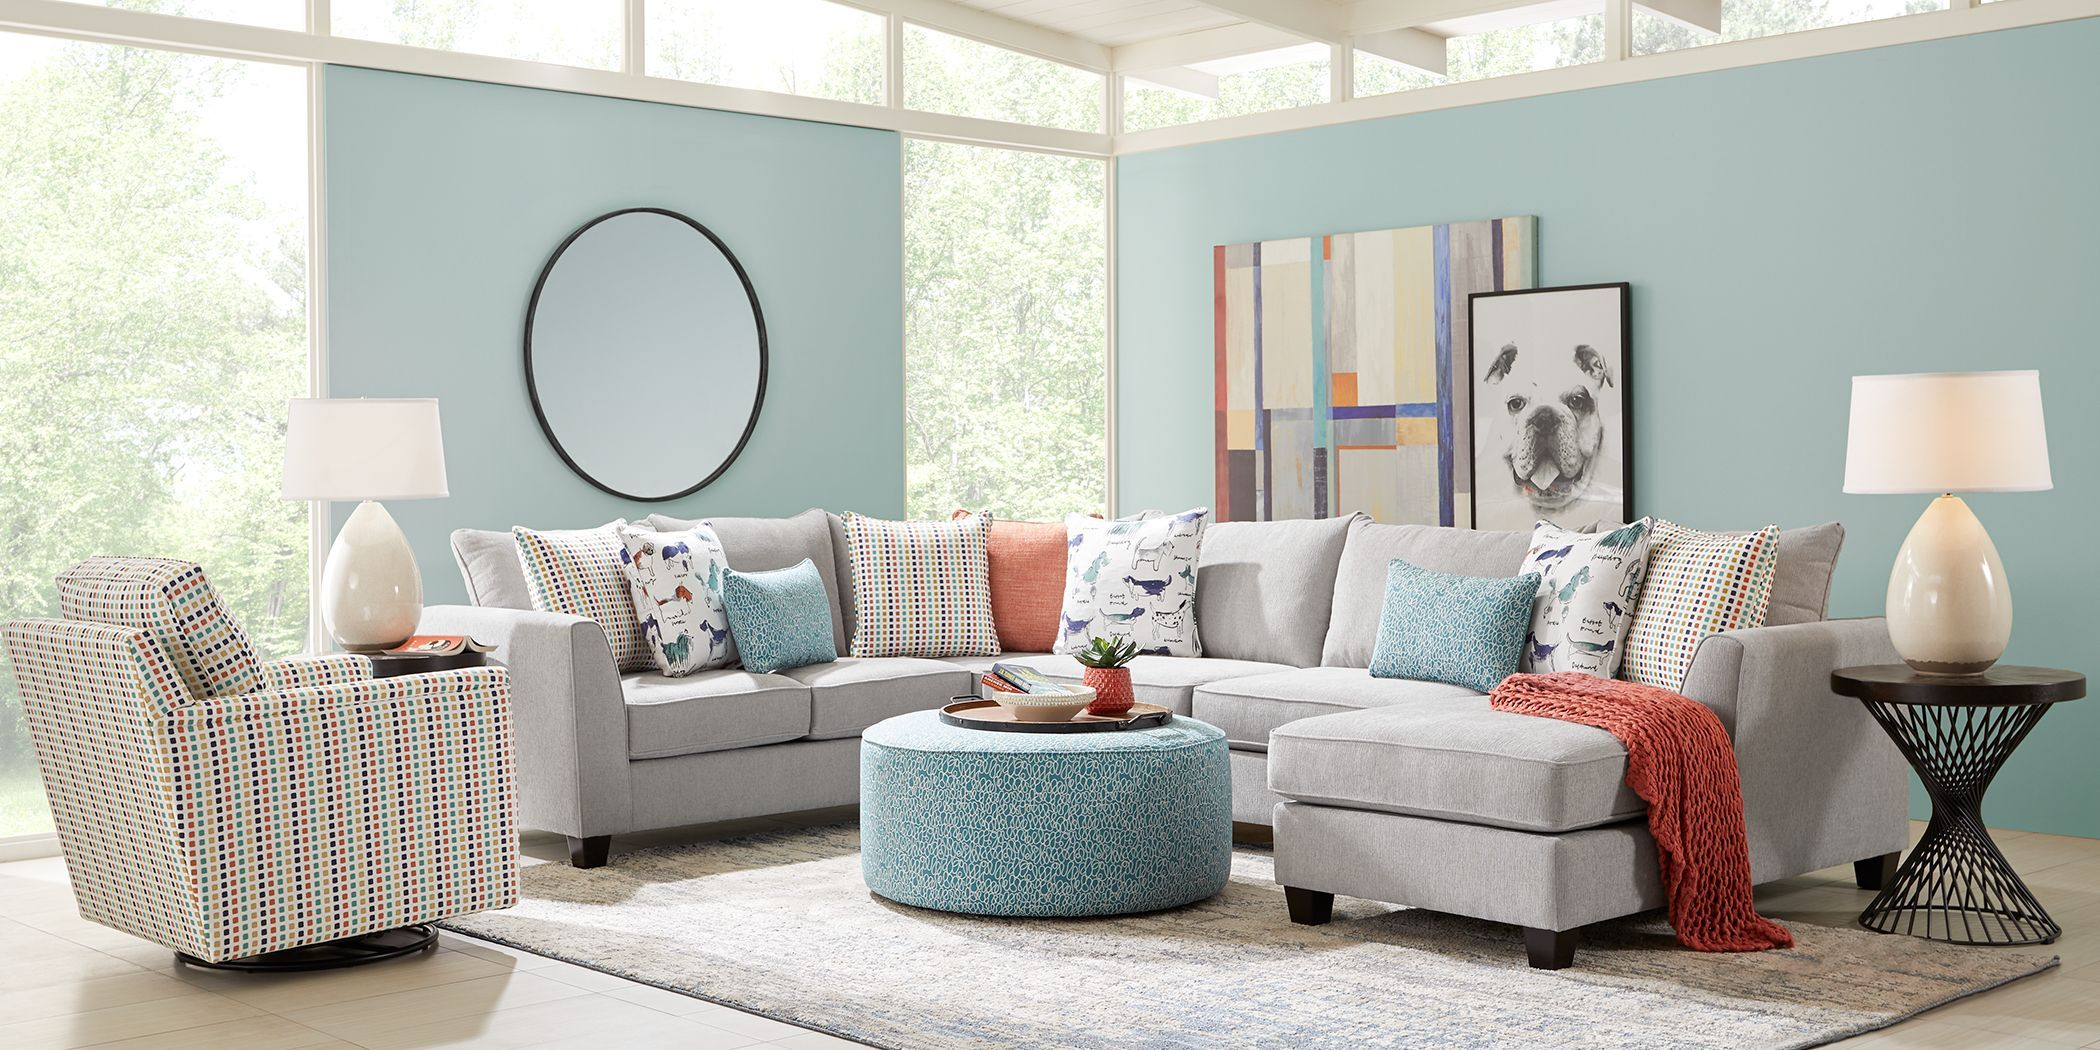 Rover Ridge Gray 6 Pc Sectional Living Room In 2020 Living Room Sets Furniture Living Room Sectional Grey Furniture Living Room #upholstered #living #room #sets